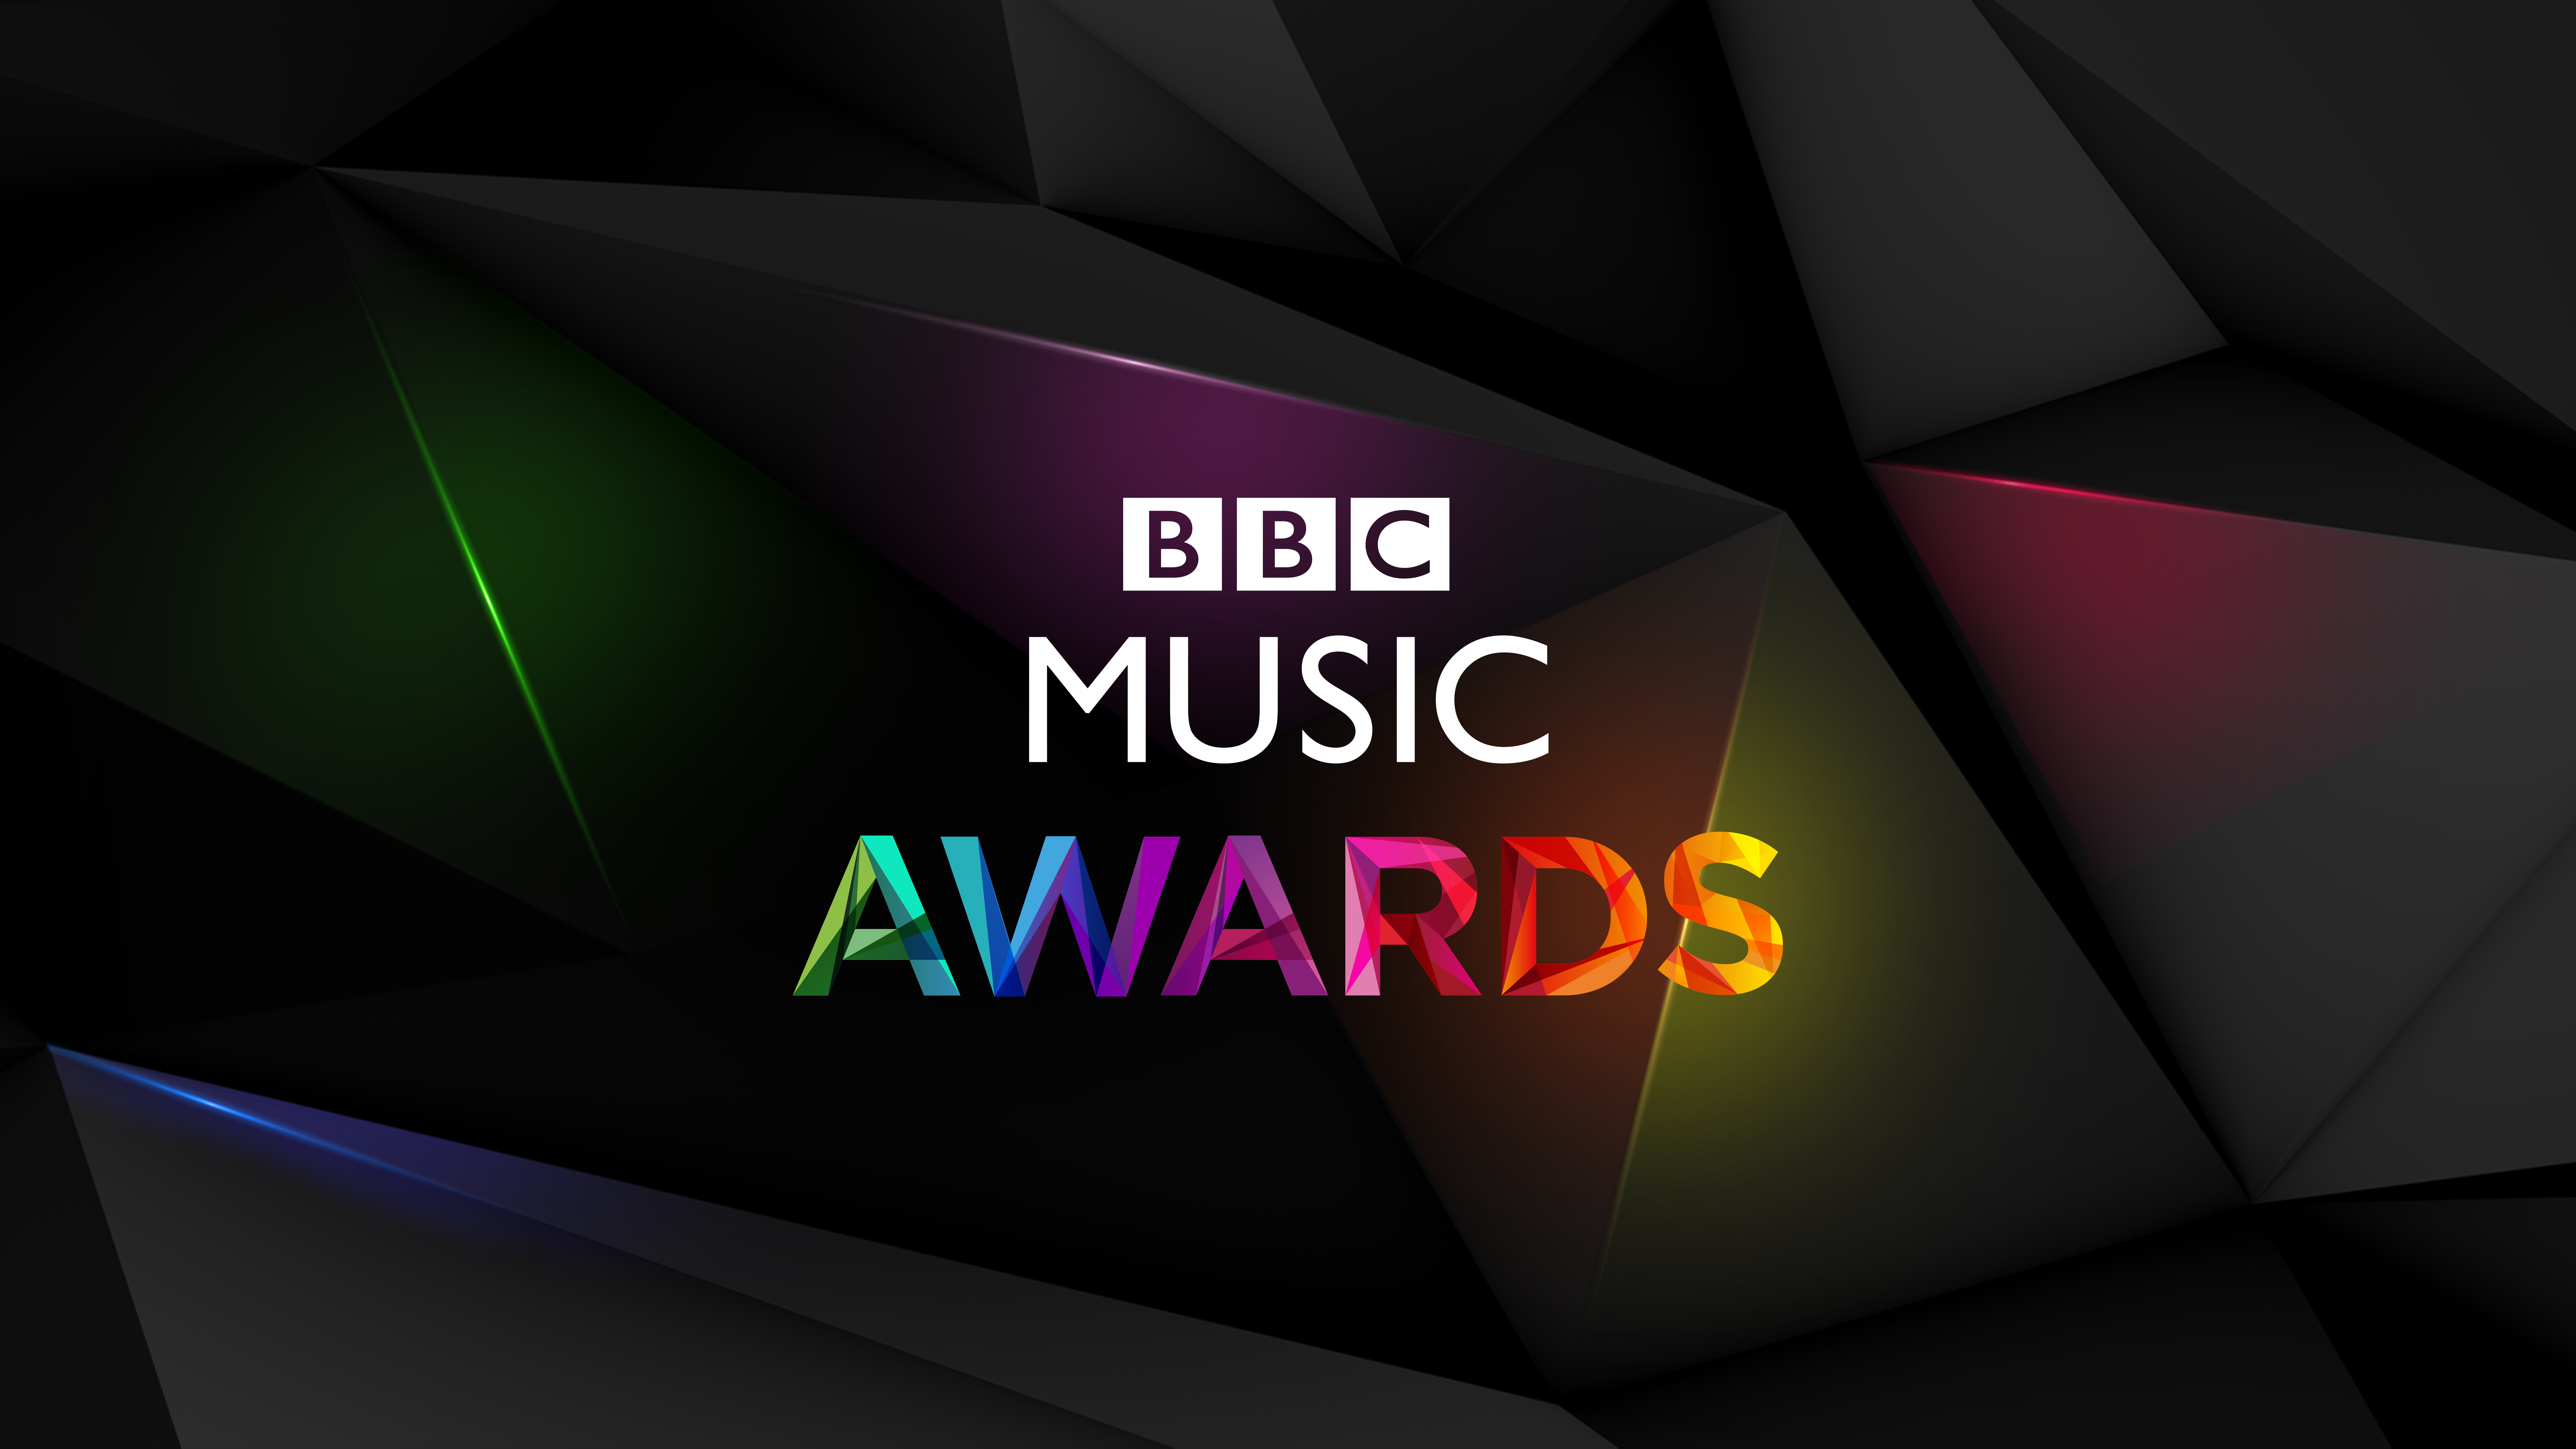 BBC_Music_Awards_Logo_8k_v2